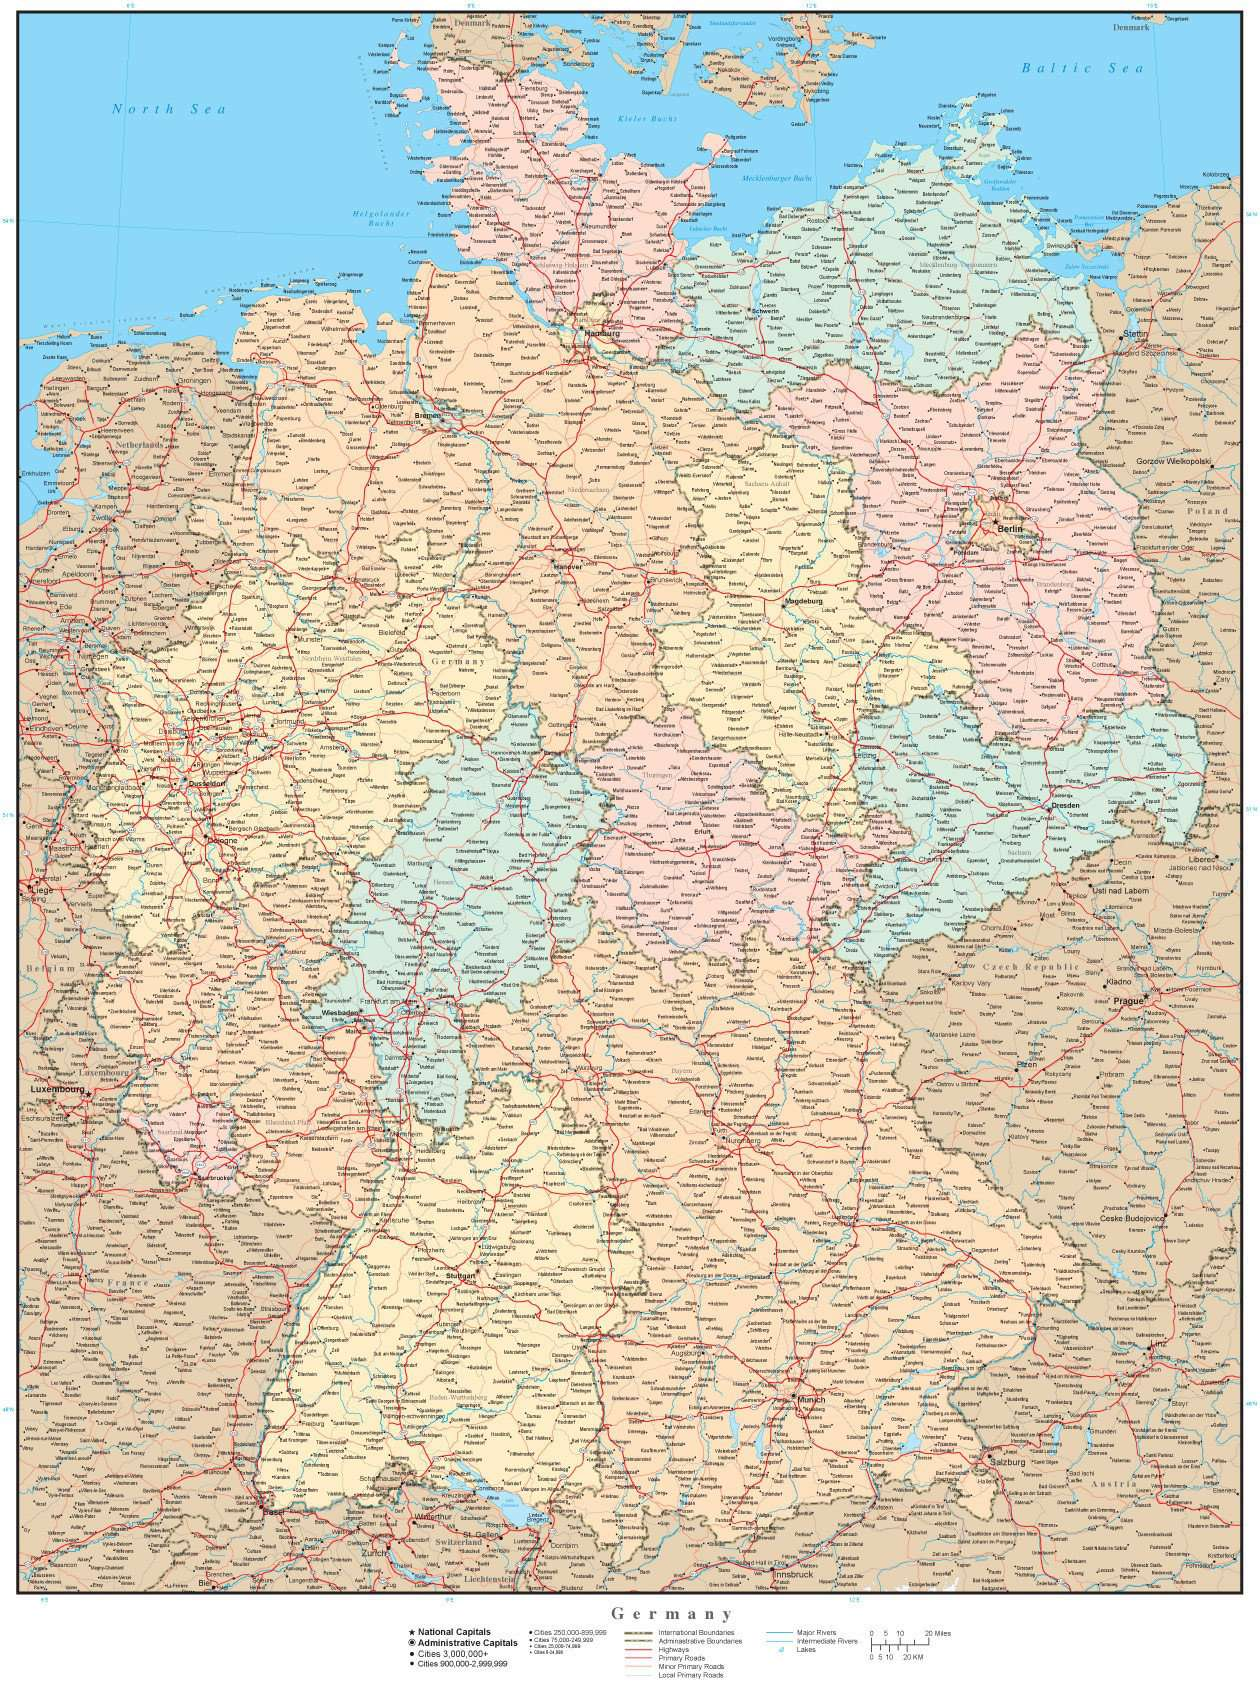 Country Of Germany Map.High Detail Germany Map With States